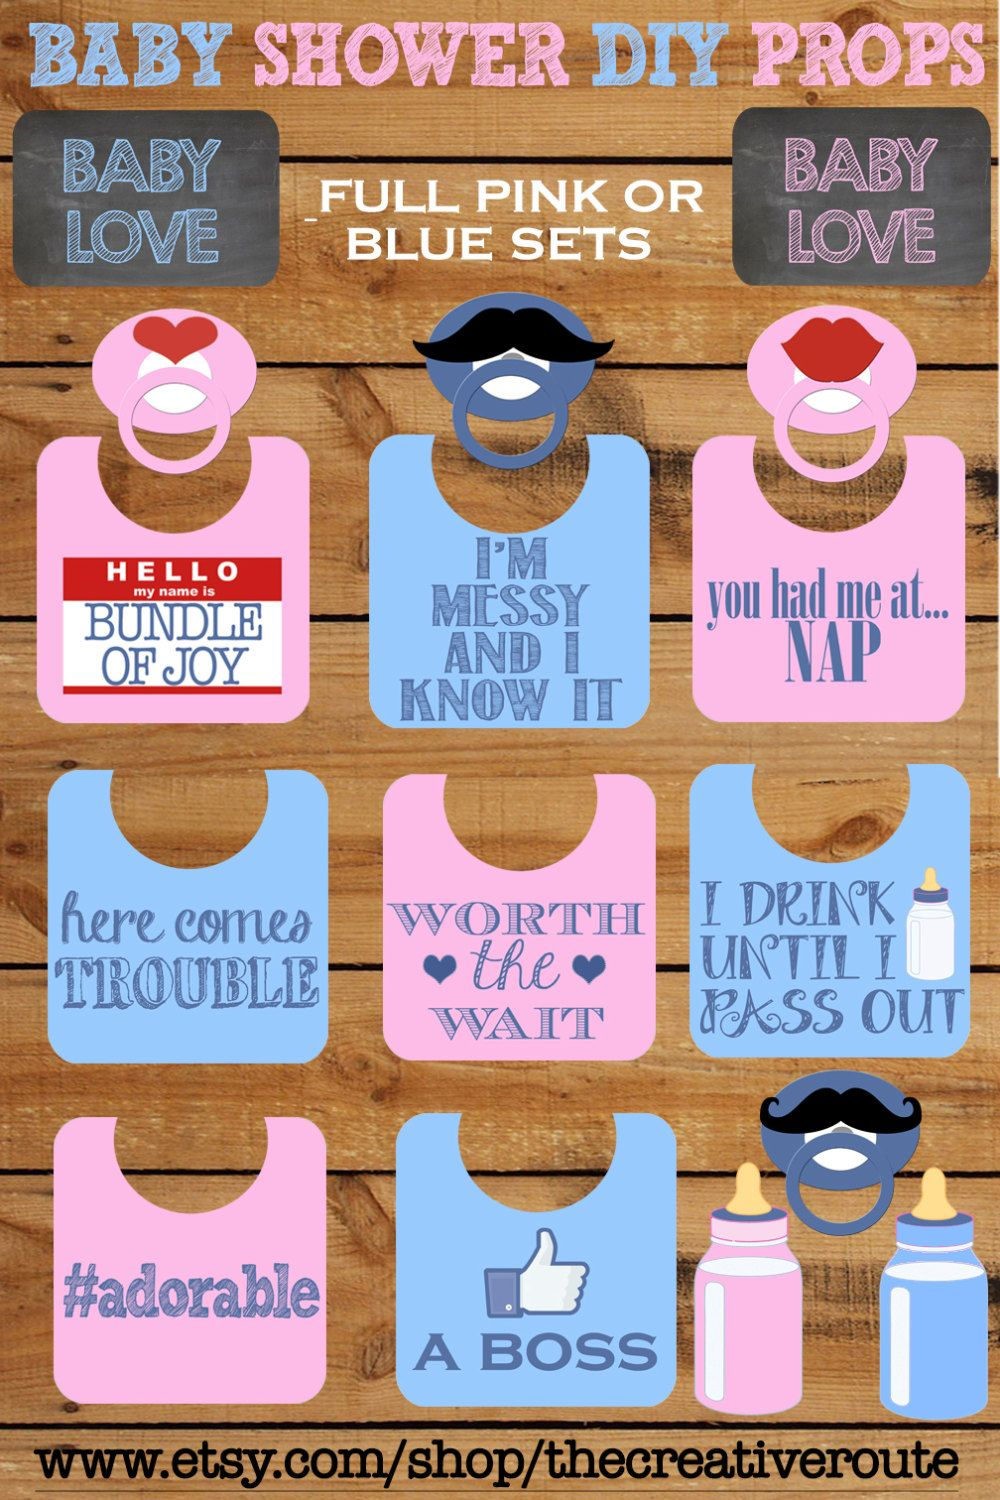 Baby Shower Gift Ideas Philippines : Baby shower photo booth props printable large by